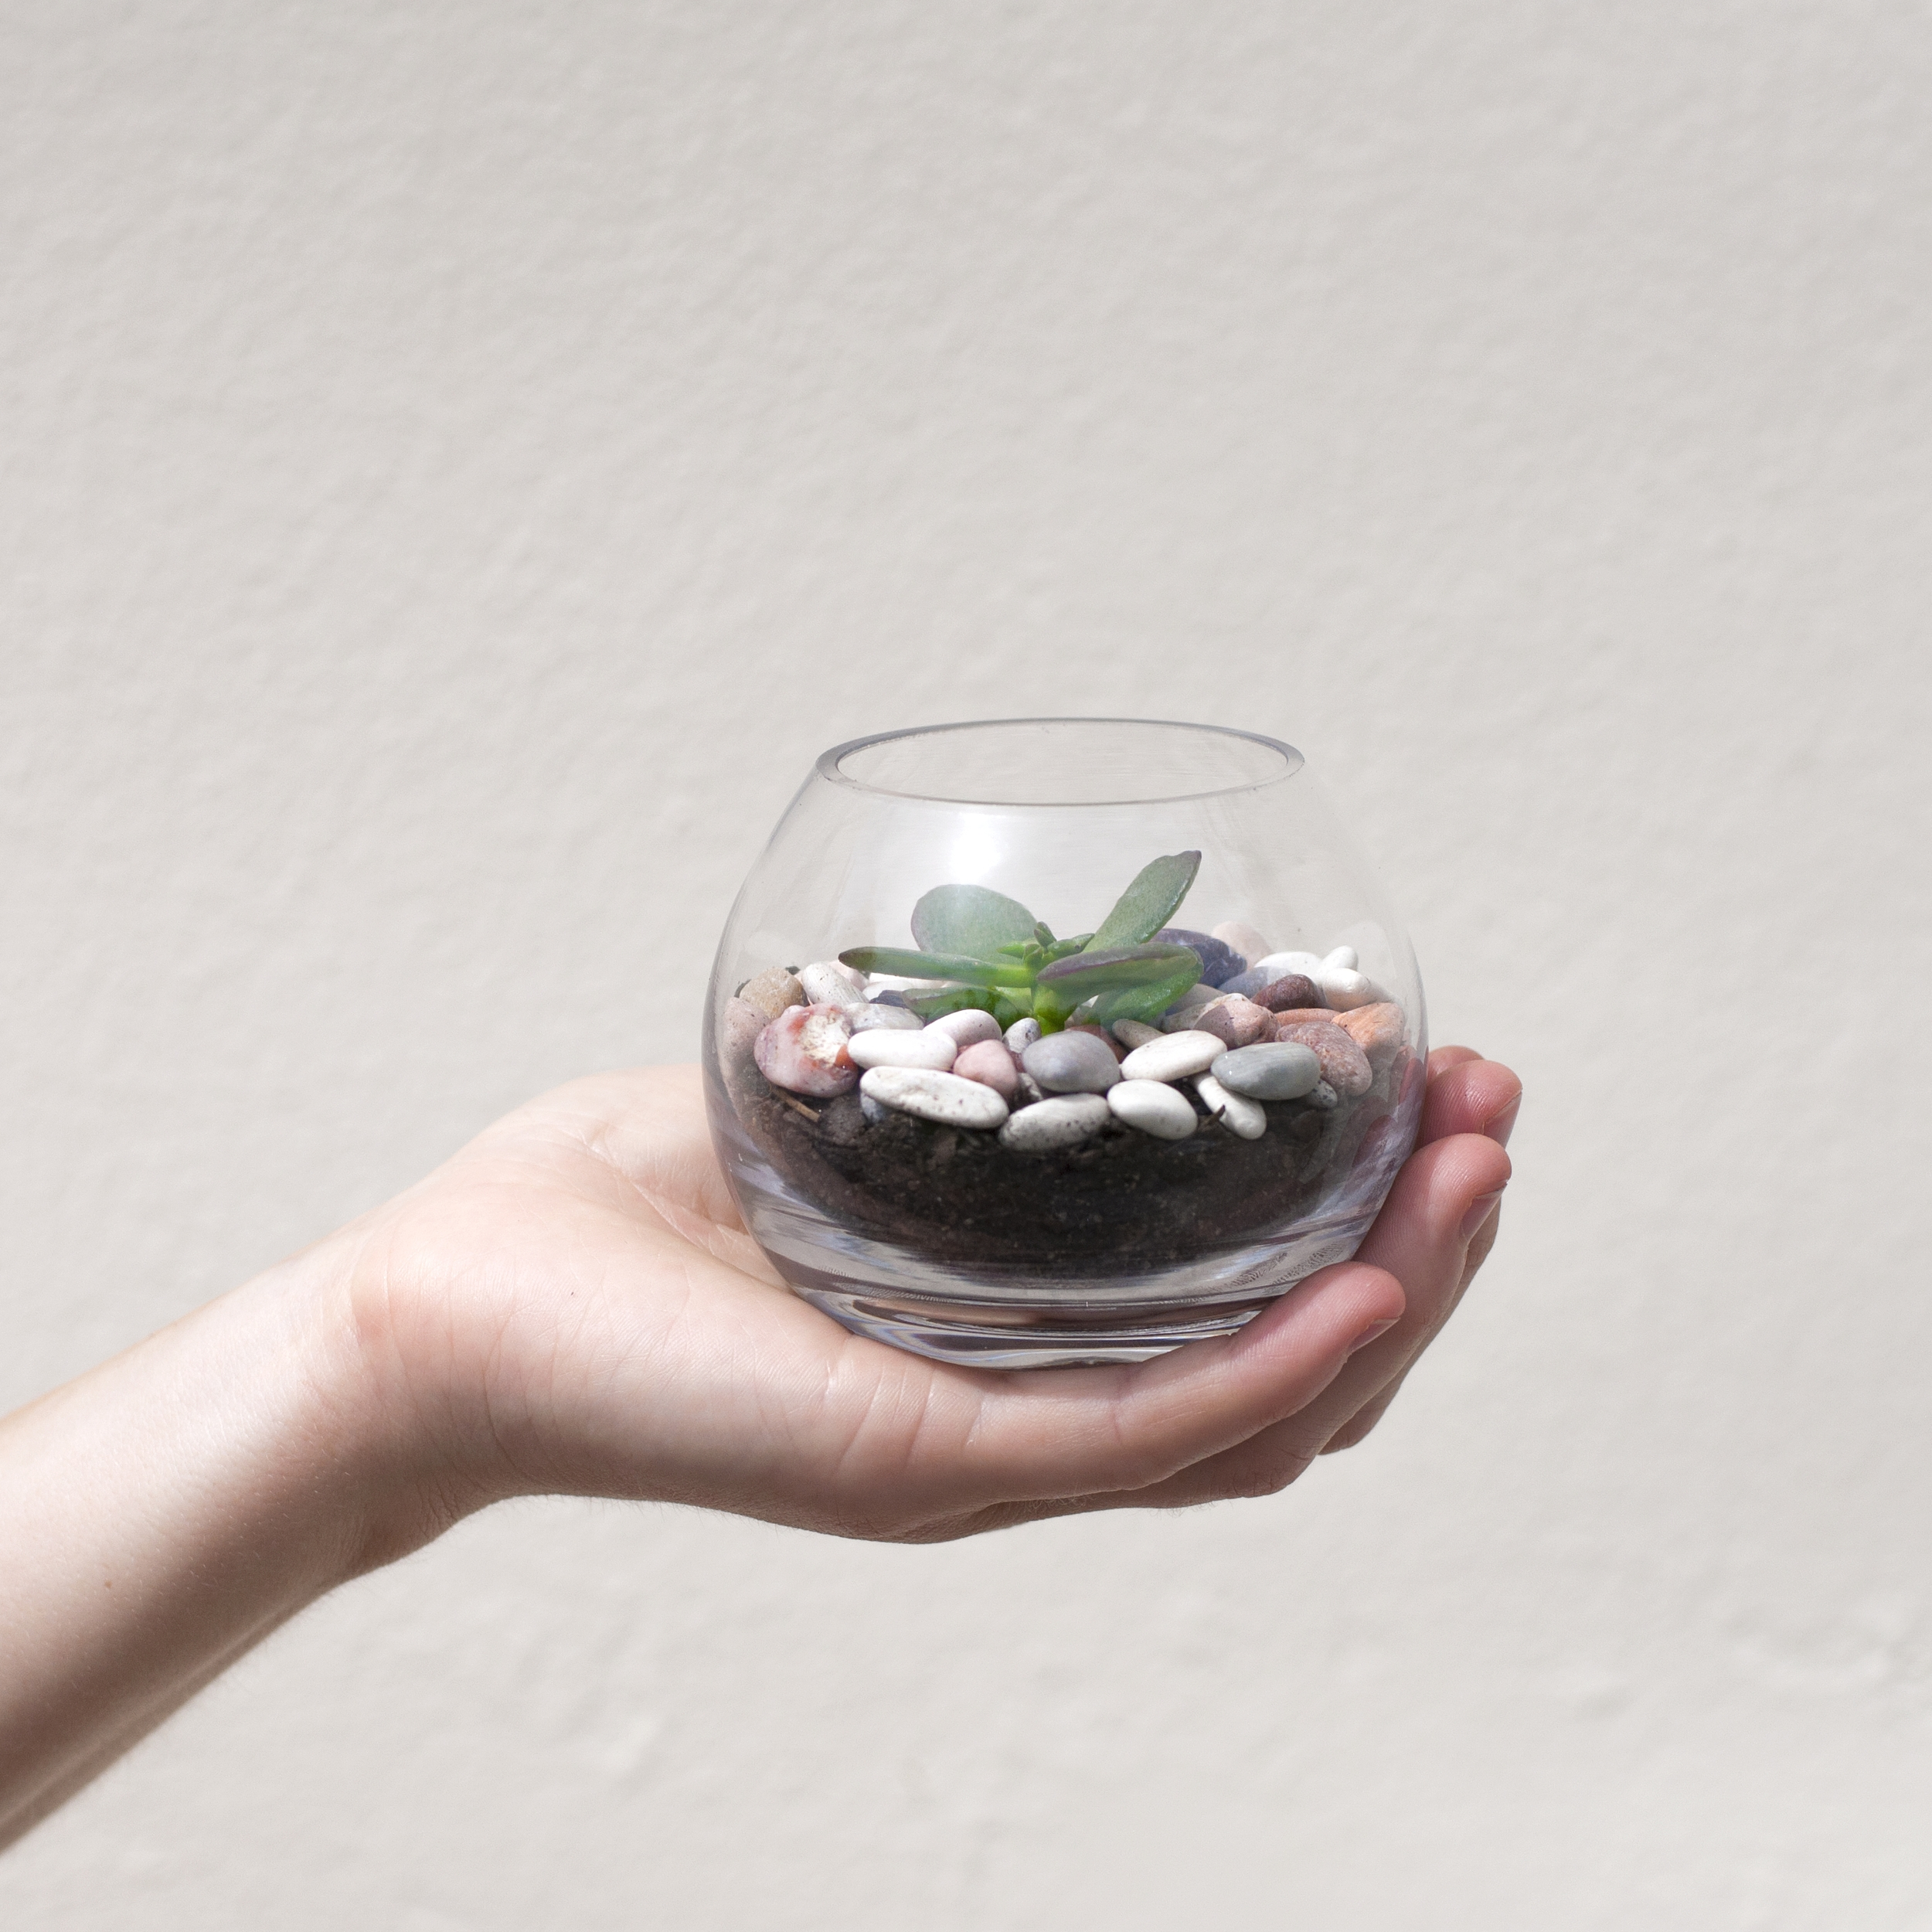 DO ME A FAVOUR  These tiny terrariums make simple yet stylish wedding favours. They can be customised to your wedding theme or just as they come. Not only do they make the table look lovely, your guests can take them home too. Everyone's a winner!  They measure approx 5-6cm wide and 4cms tall.  $8